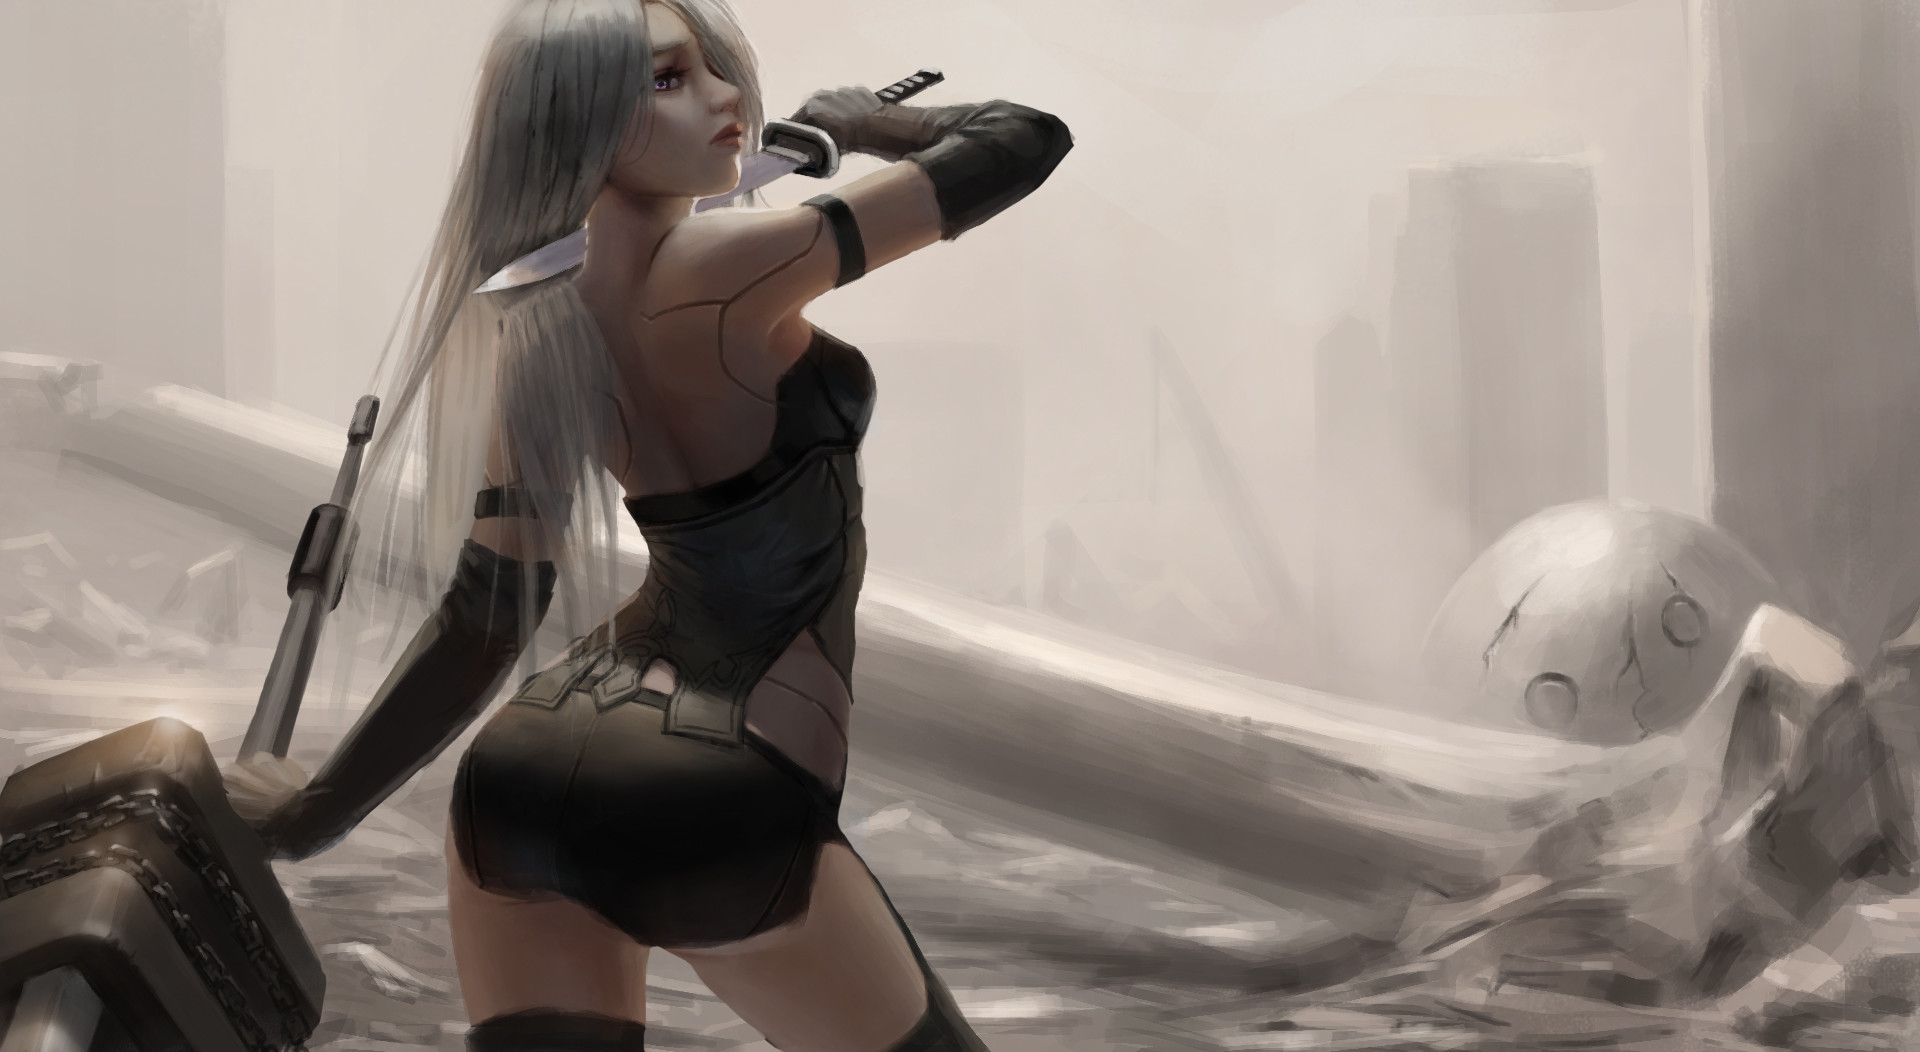 Nier Automata Fantasy Game Art Full Hd Wallpaper: Nier Automata Fan Art, HD Games, 4k Wallpapers, Images